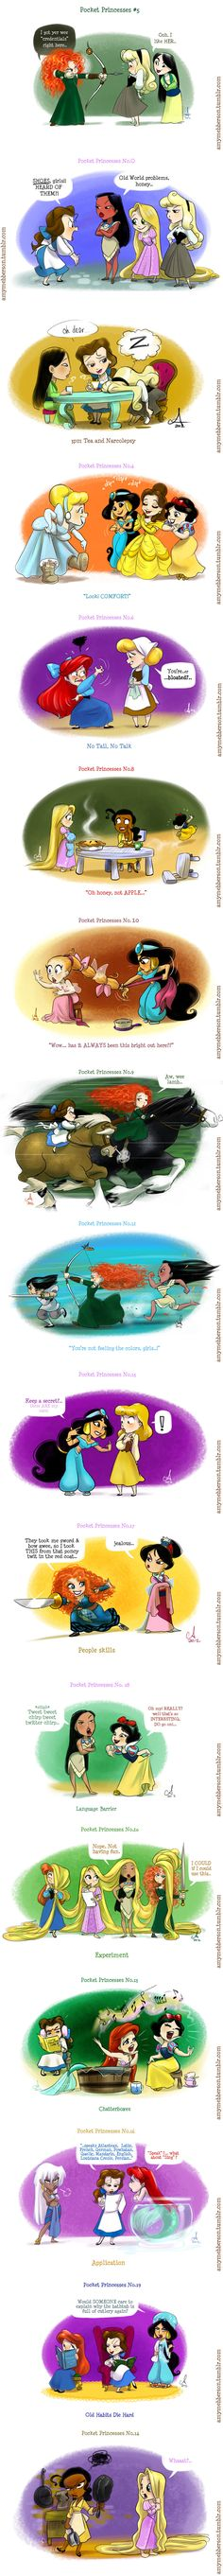 Funny Disney Pocket Princesses Comics http://geektyrant.com/news/2012/6/3/funny-disney-pocket-princesses-comics.html